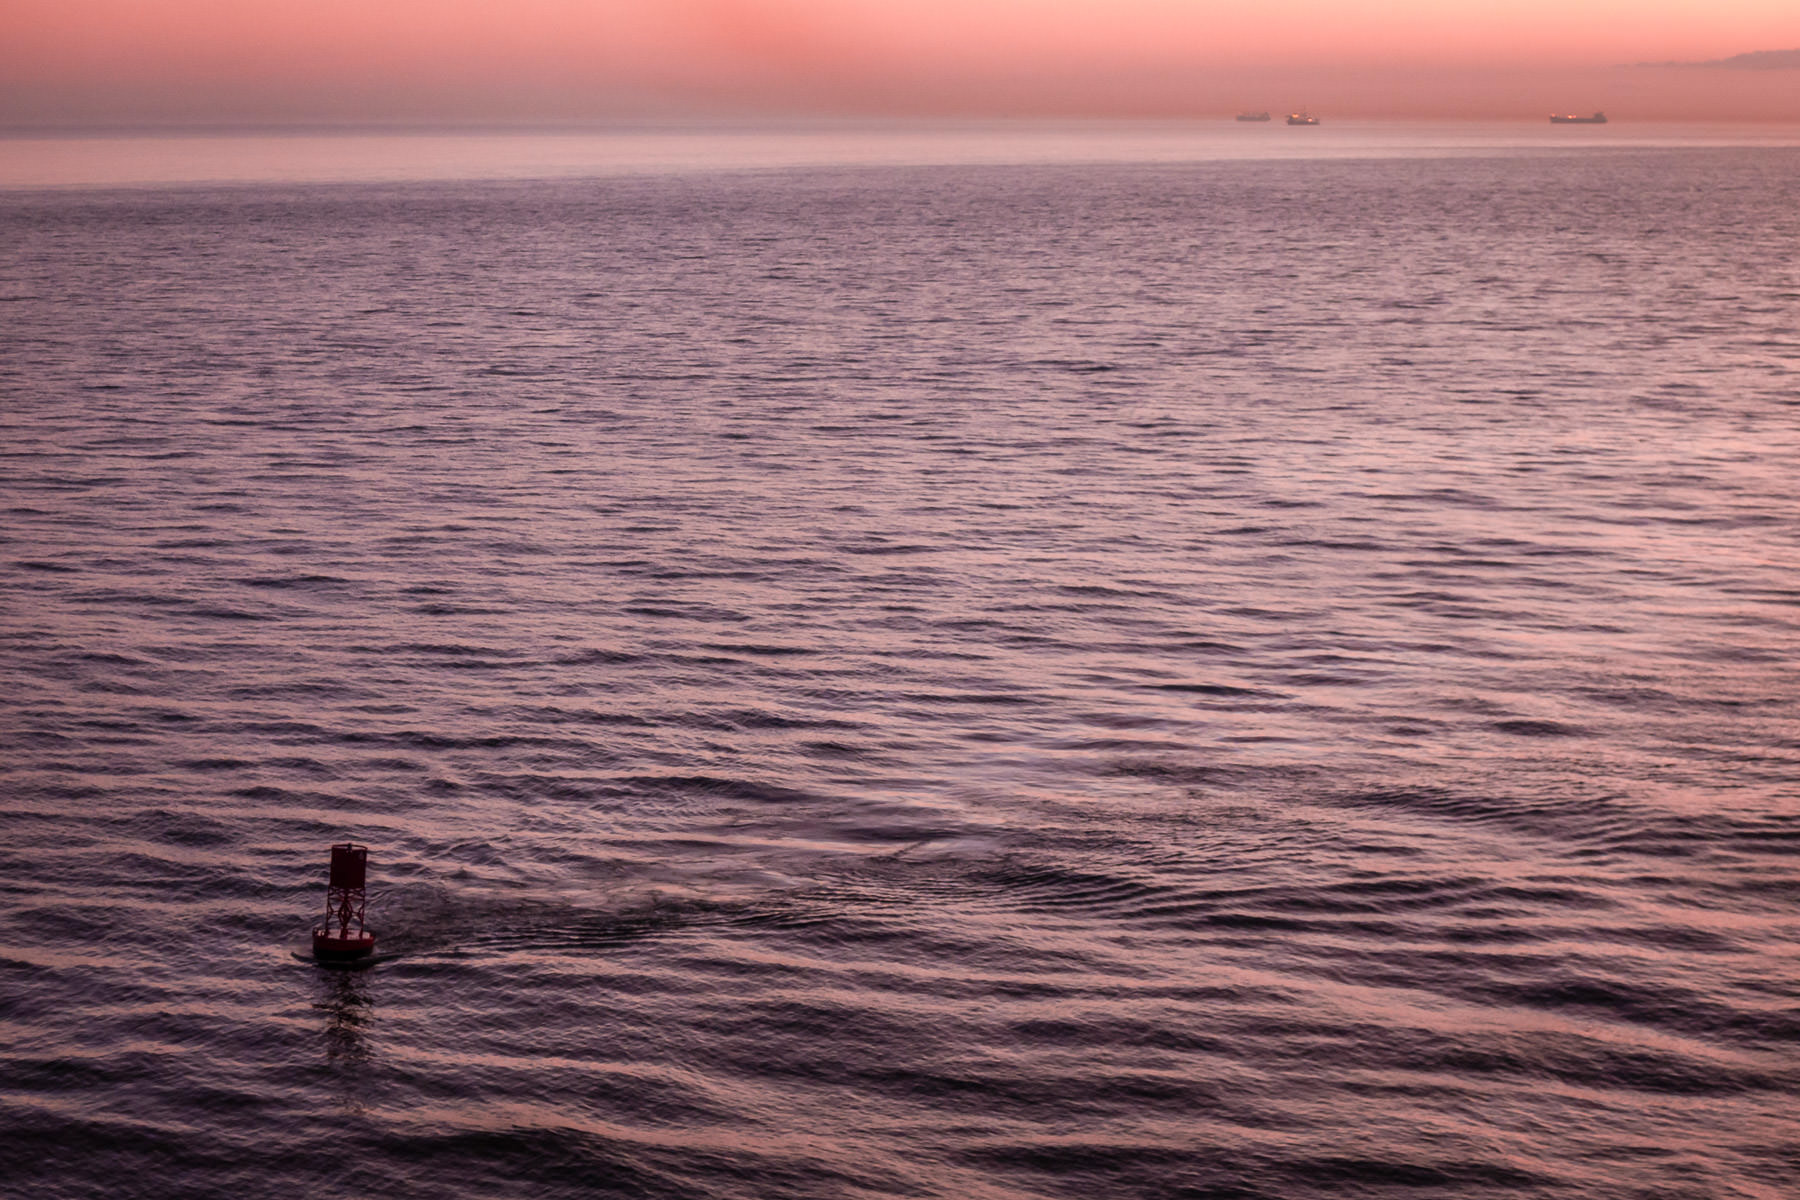 The early-morning sun illuminates a buoy marking the approach to Bolivar Roads—the entrance to Galveston Bay—near the north east end of Galveston Island, Texas.